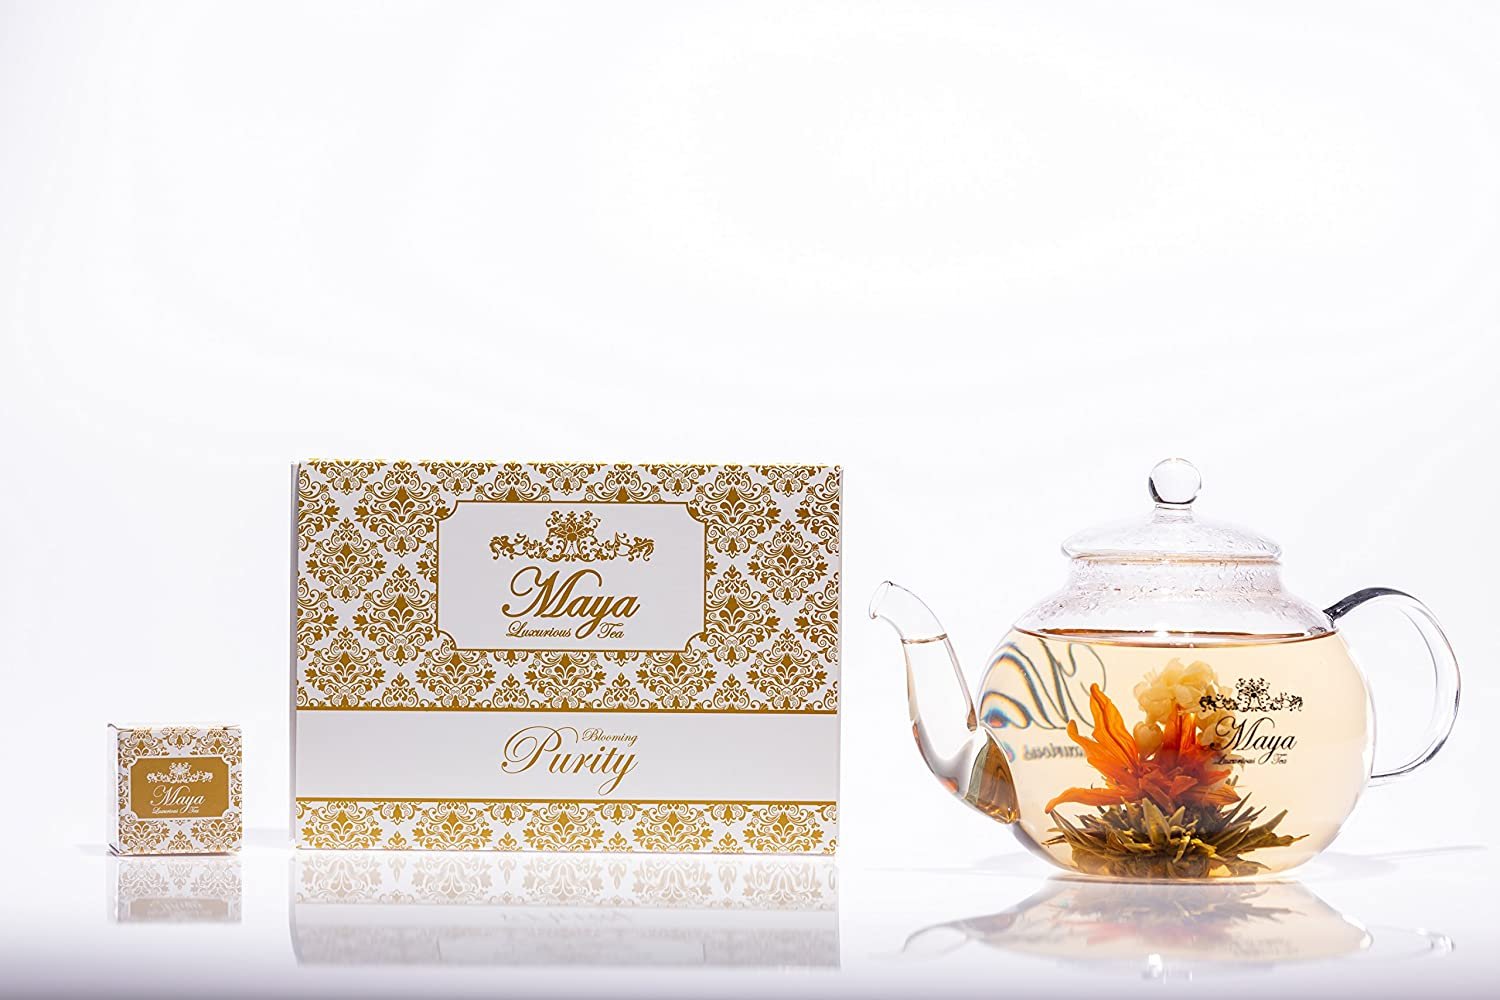 Blooming Purity Tea, Pack of 12